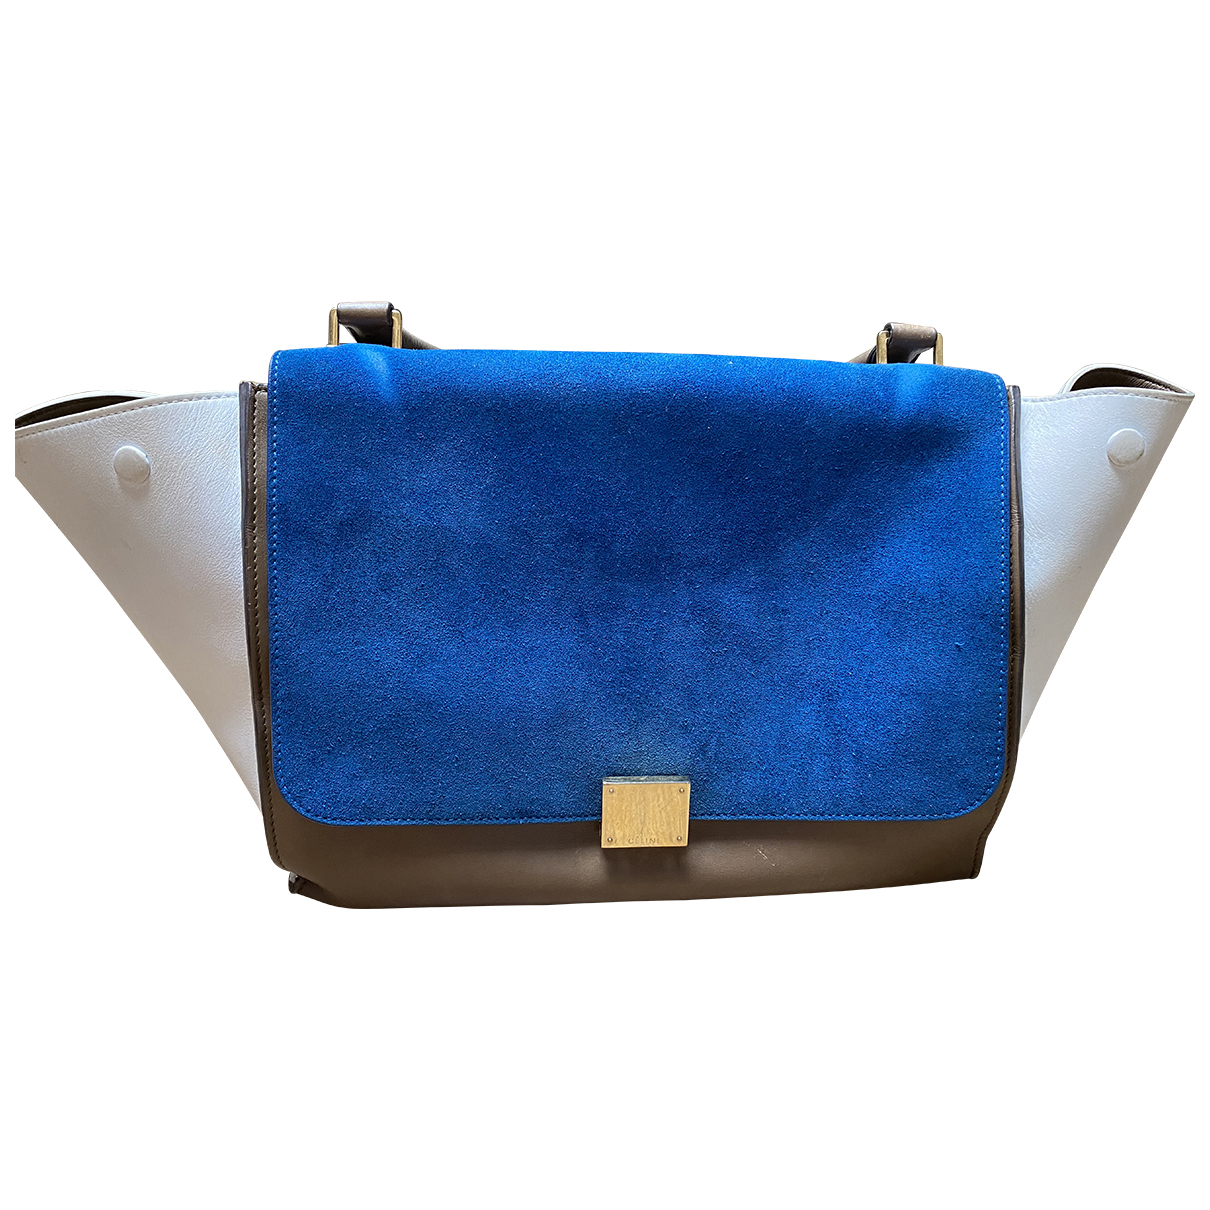 Celine Trapèze Blue Leather handbag for Women N